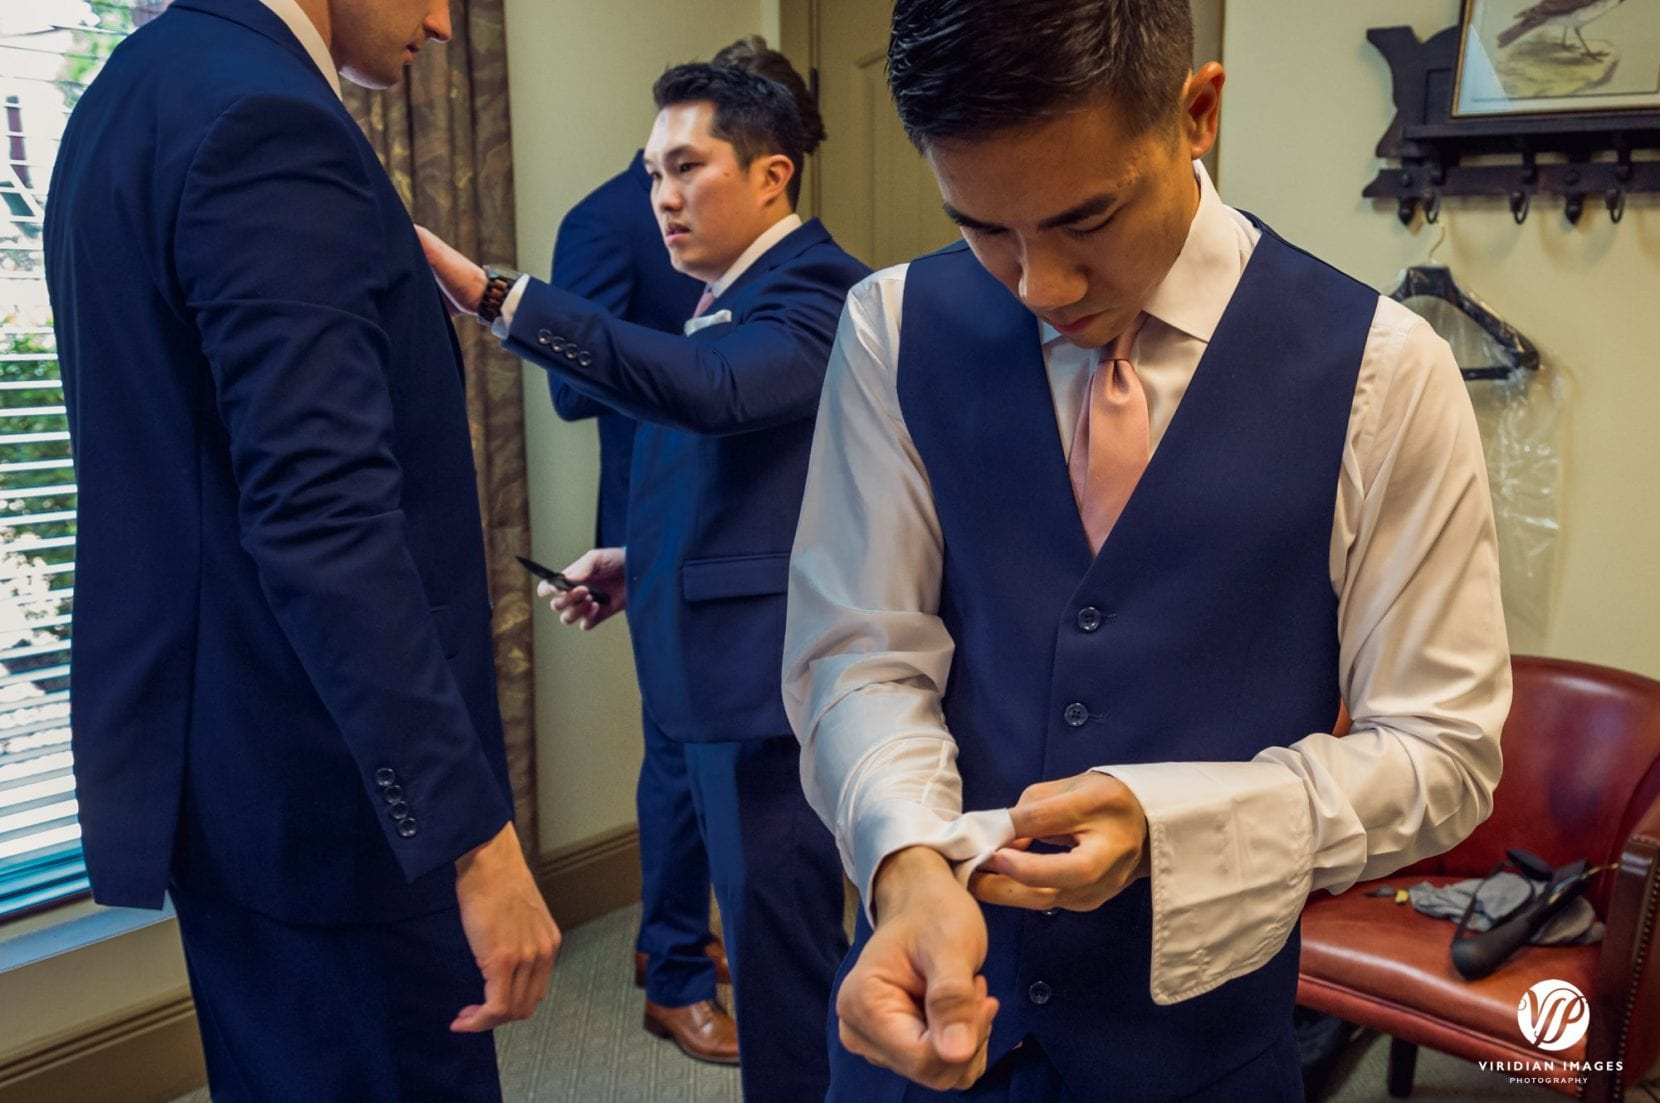 groom putting on cufflinks getting ready